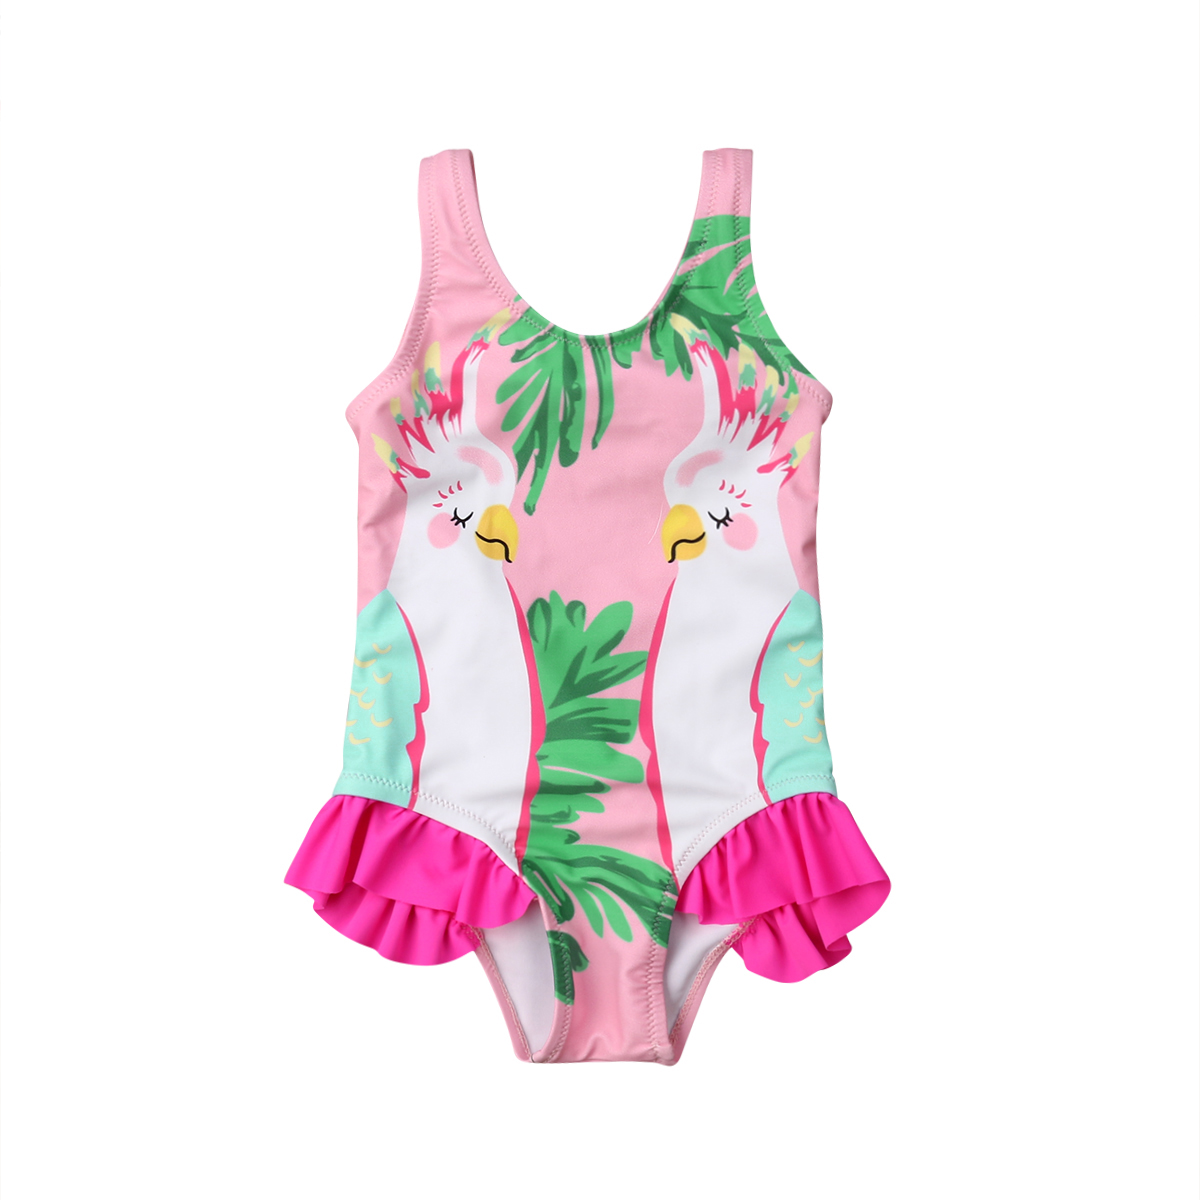 Kids Baby Girls Double Parrots girls Swimwear Swimsuit Bathing Suit BeachKids Baby Girls Double Parrots girls Swimwear Swimsuit Bathing Suit Beach